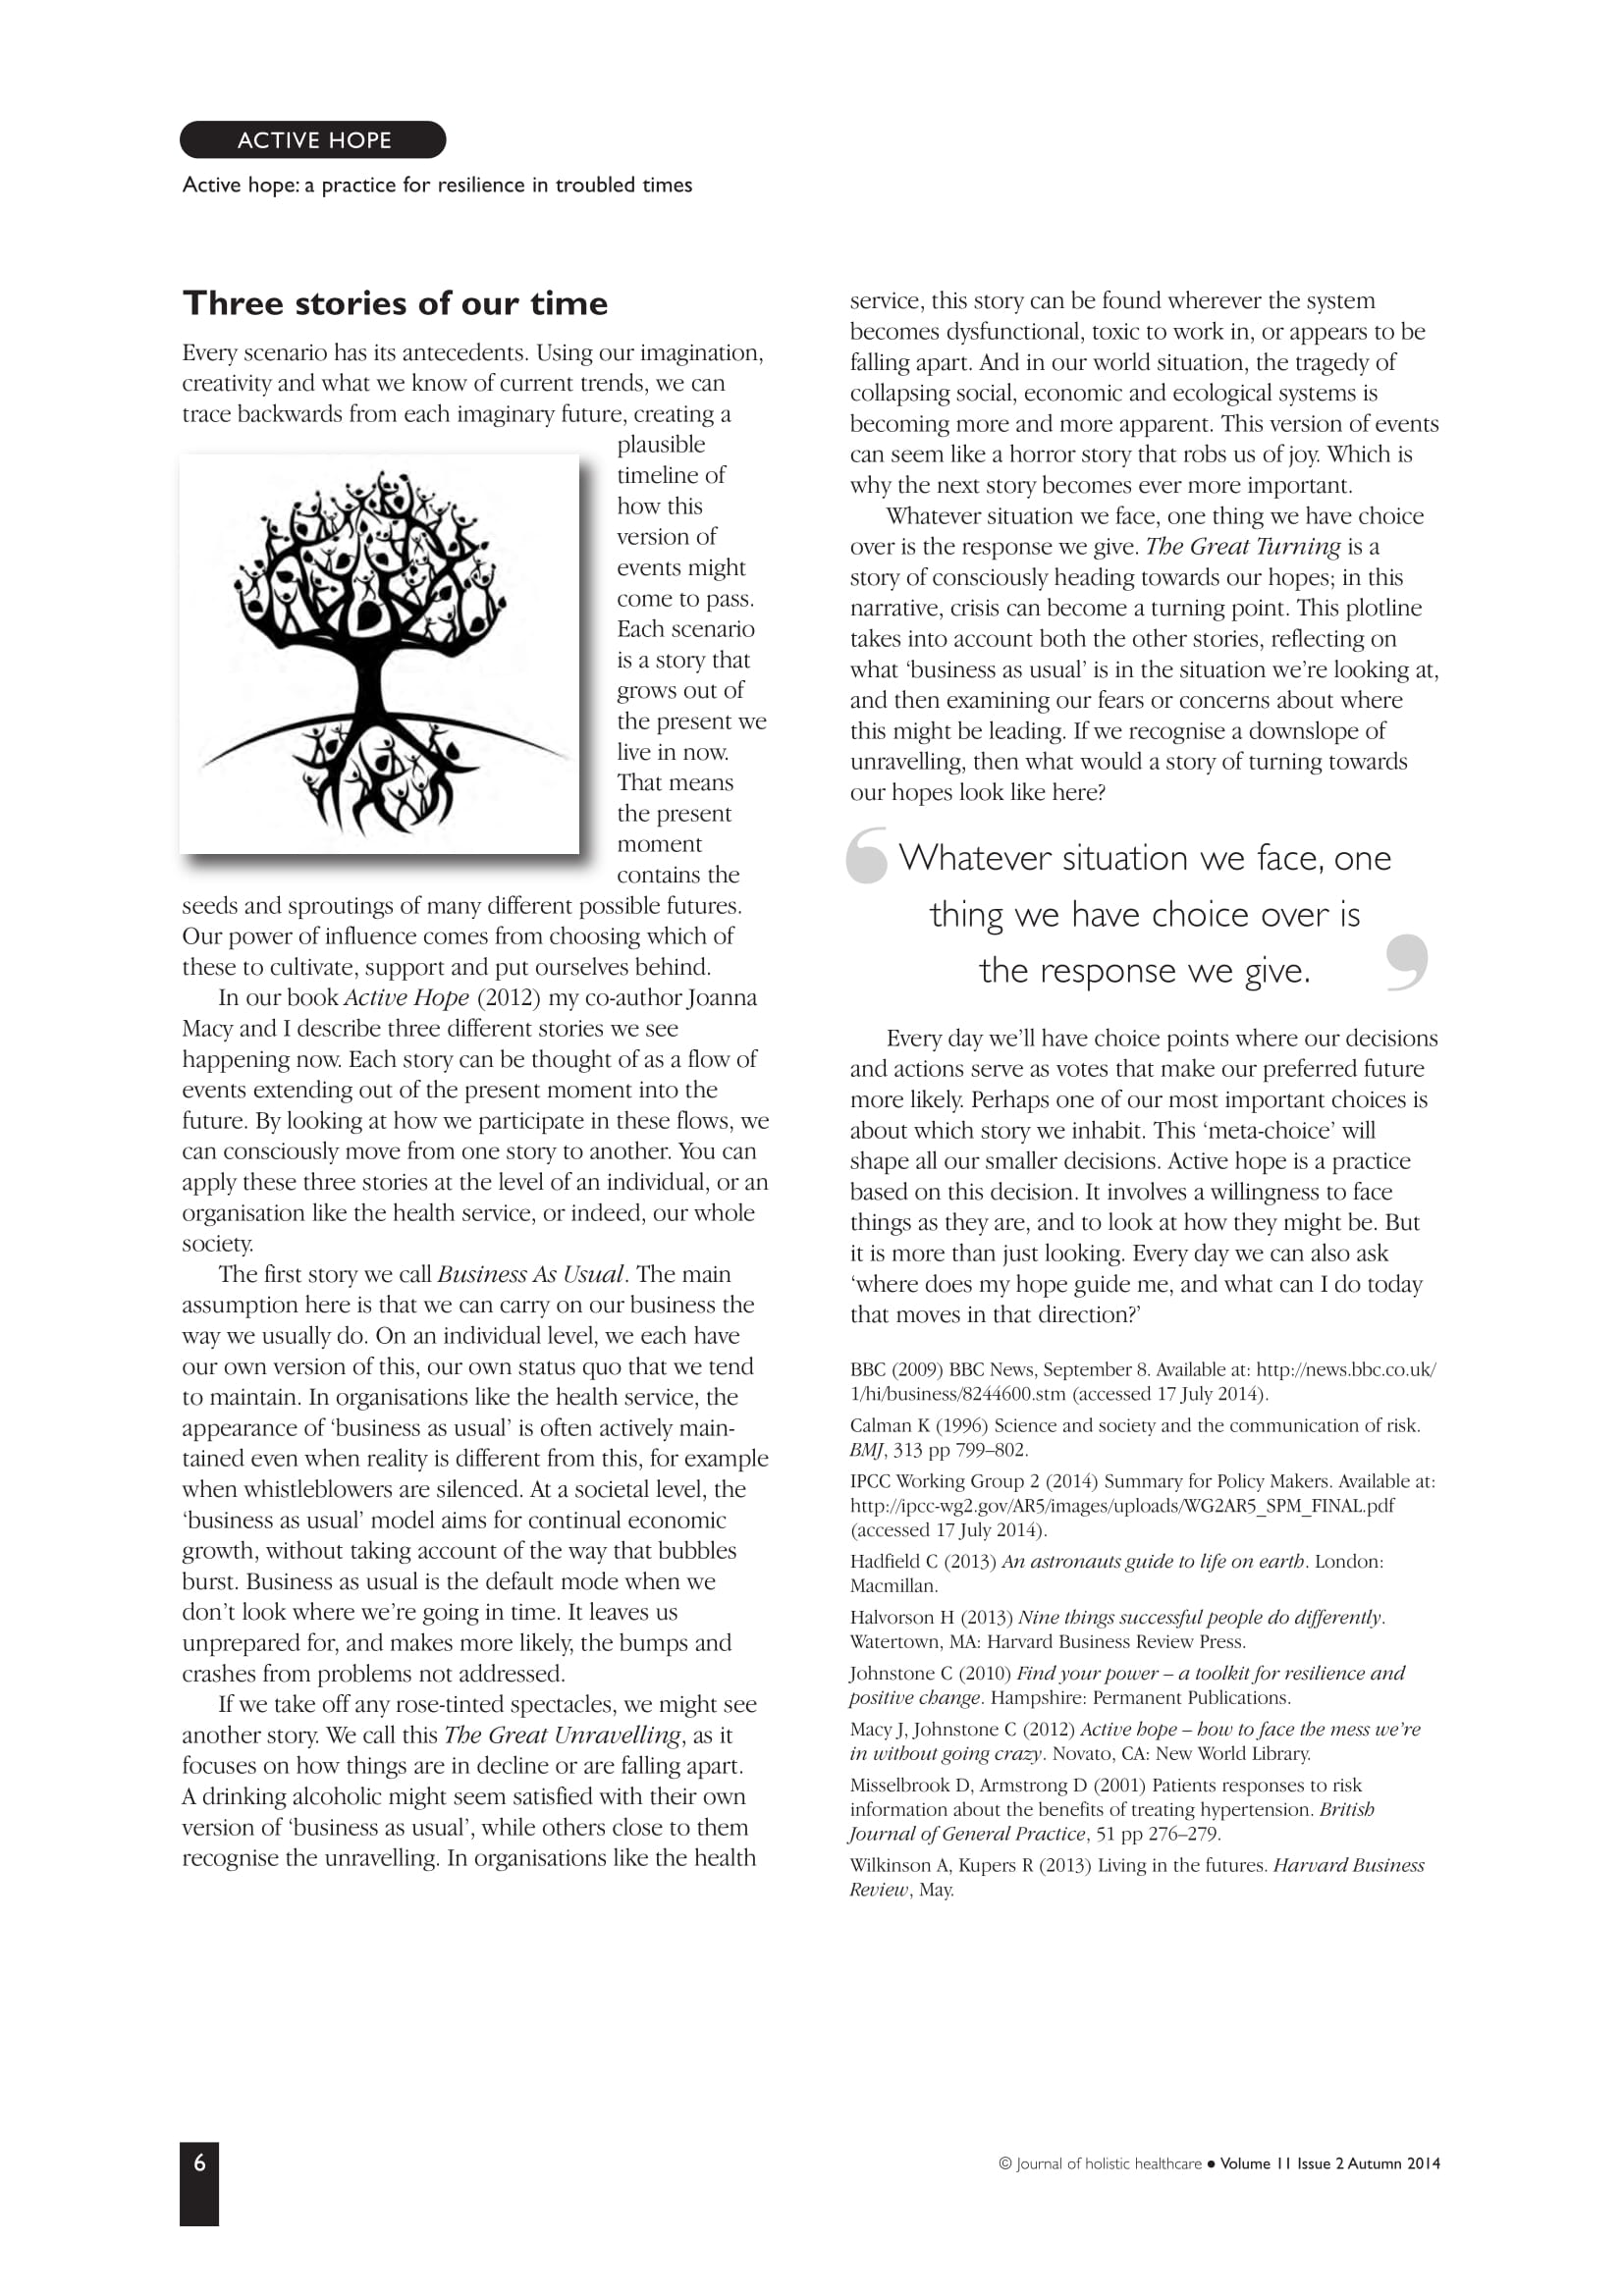 Active Hope article JHH 2014-3.jpg